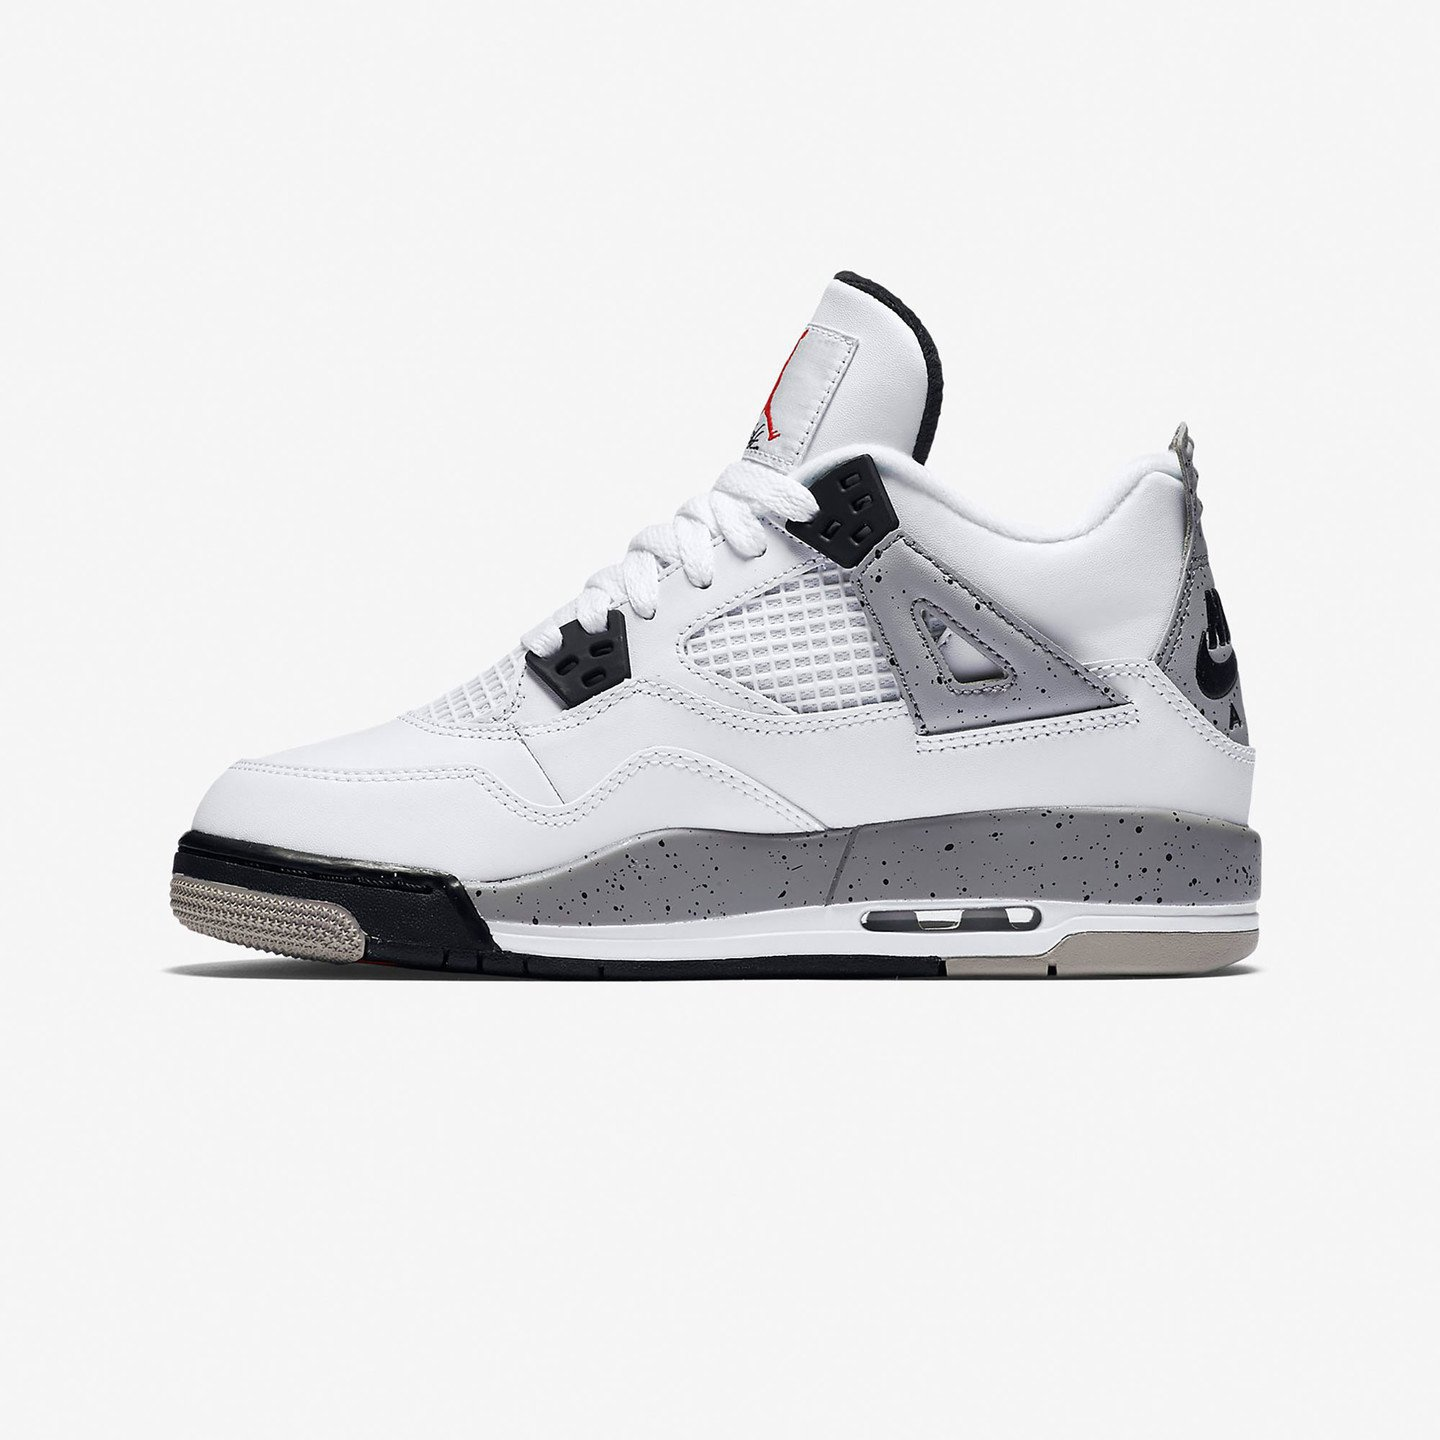 Nike Air Jordan 4 Retro GS Cement White / Fire Red / Tech Grey / Black 836016-192-40